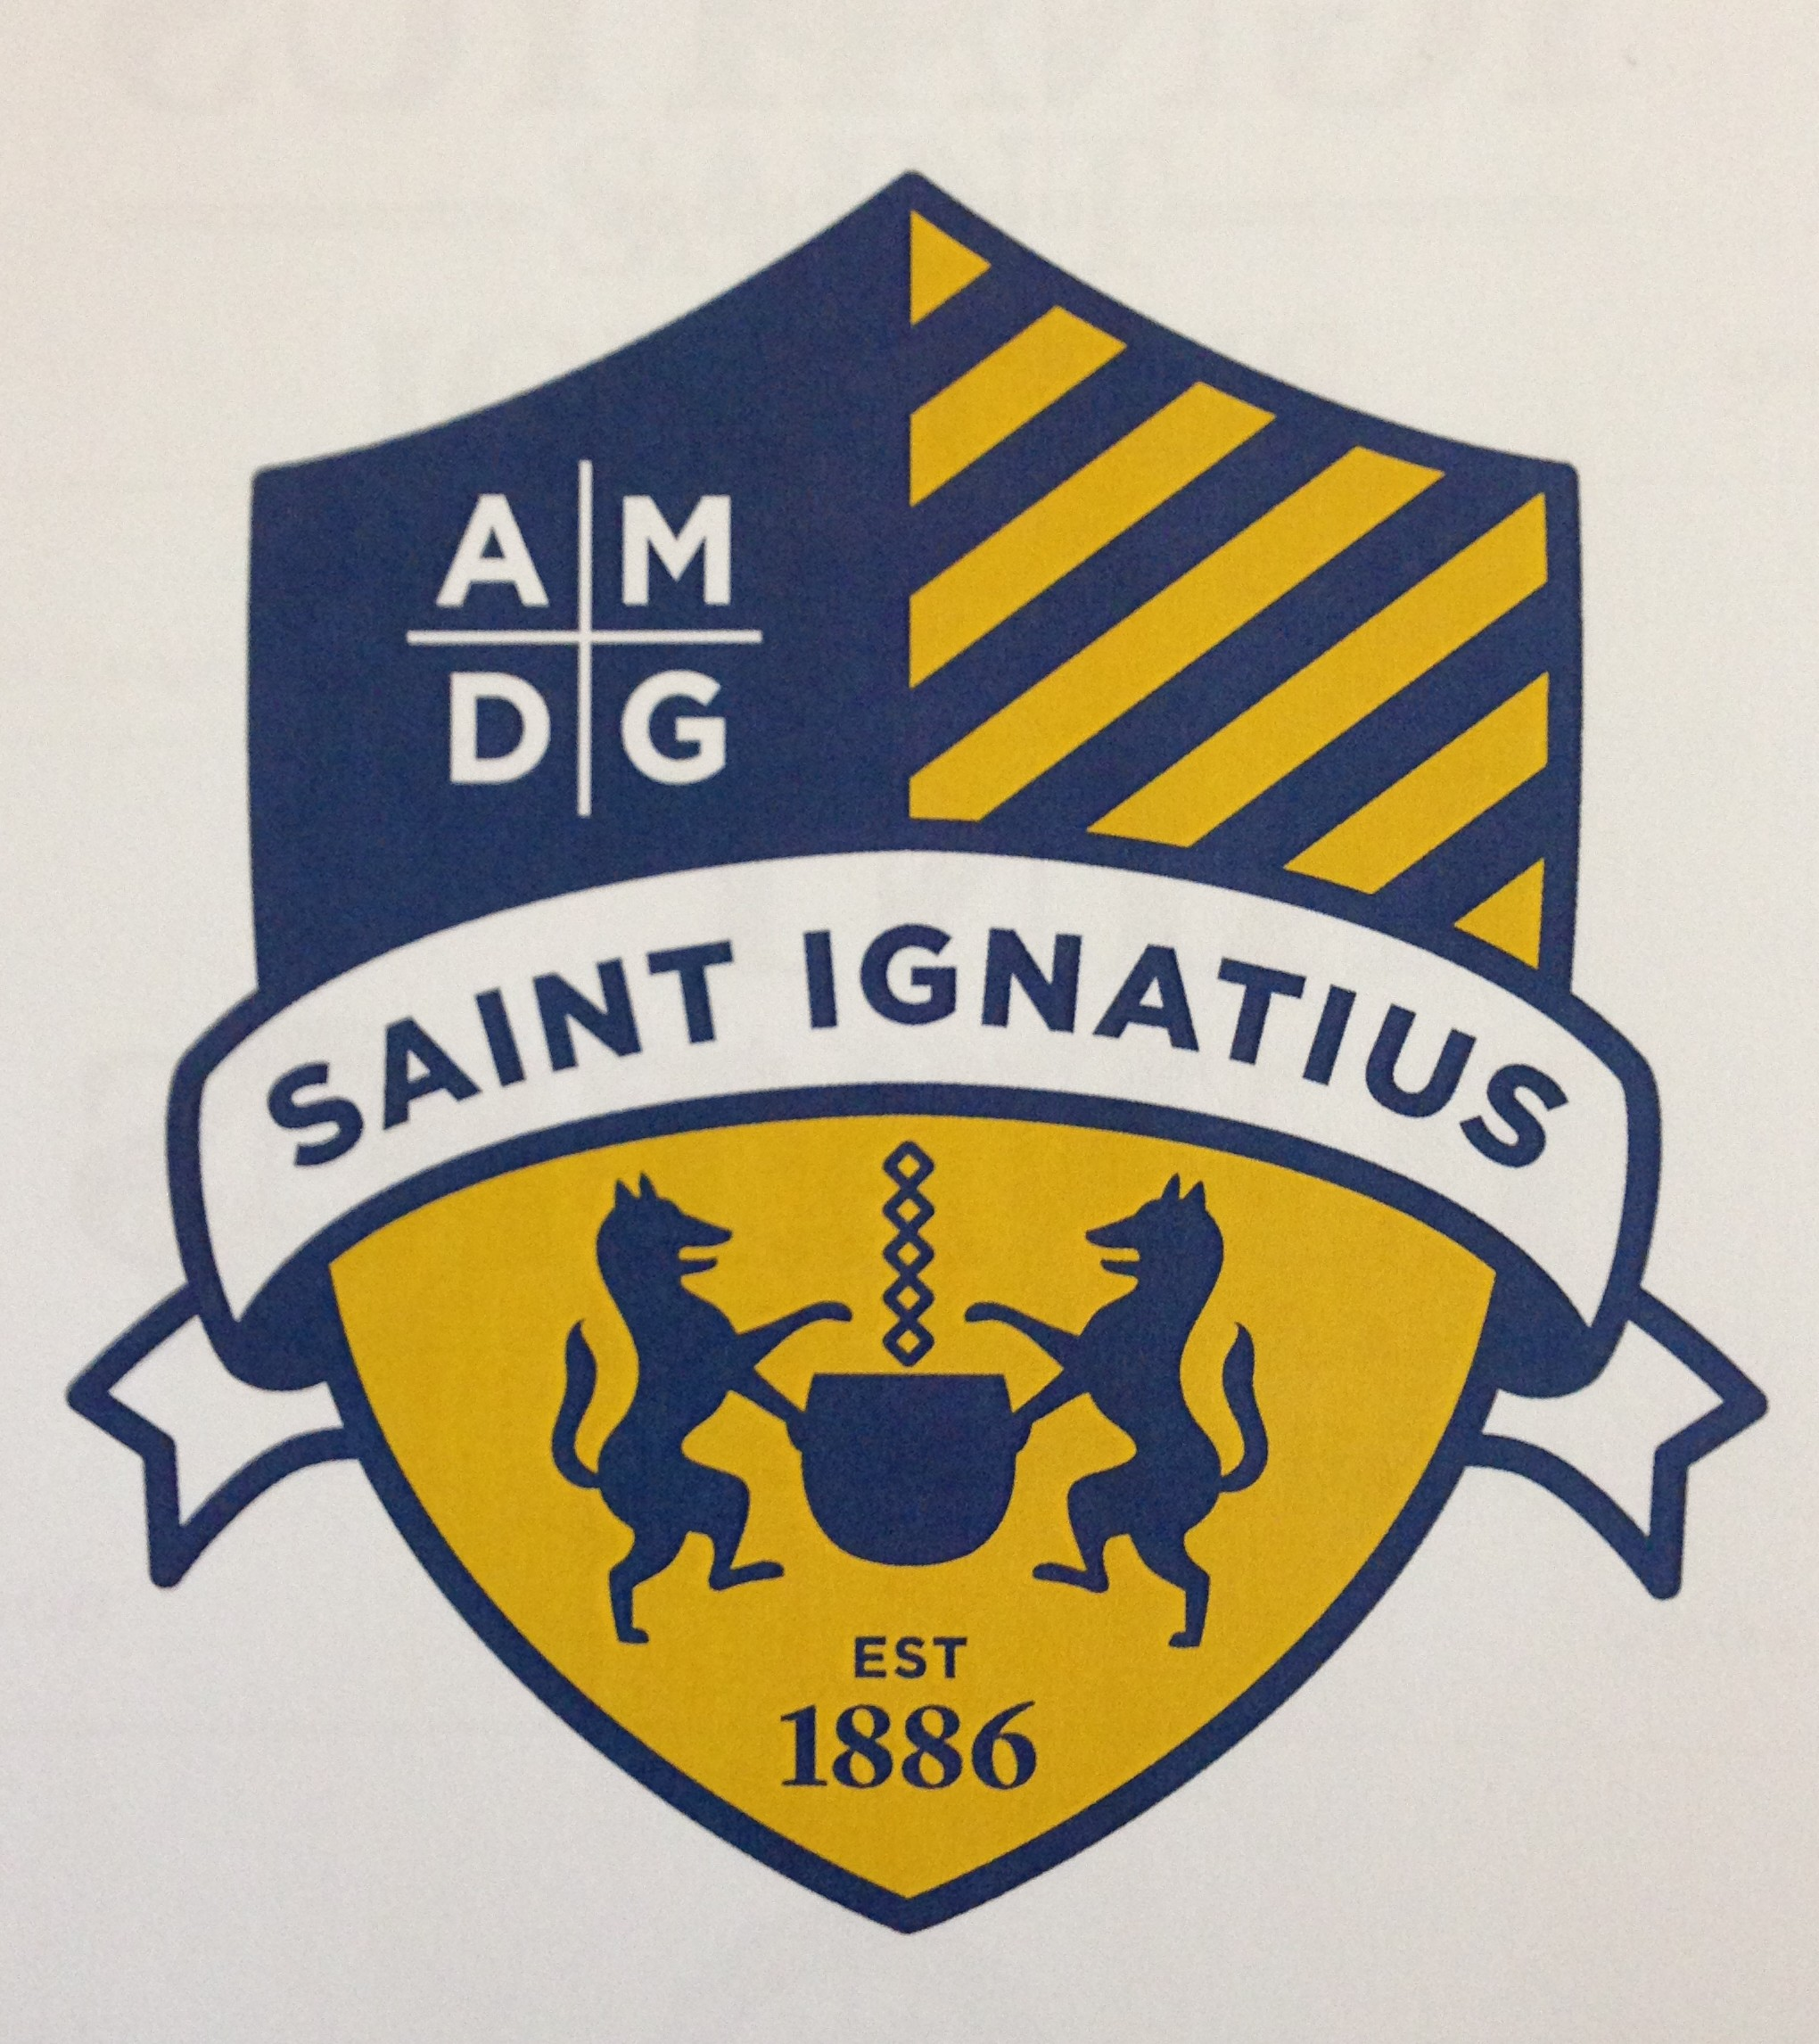 New saint ignatius logos aim to define who we are saint ignatius eye photo 2013 03 12 053632 pm the shield will biocorpaavc Images